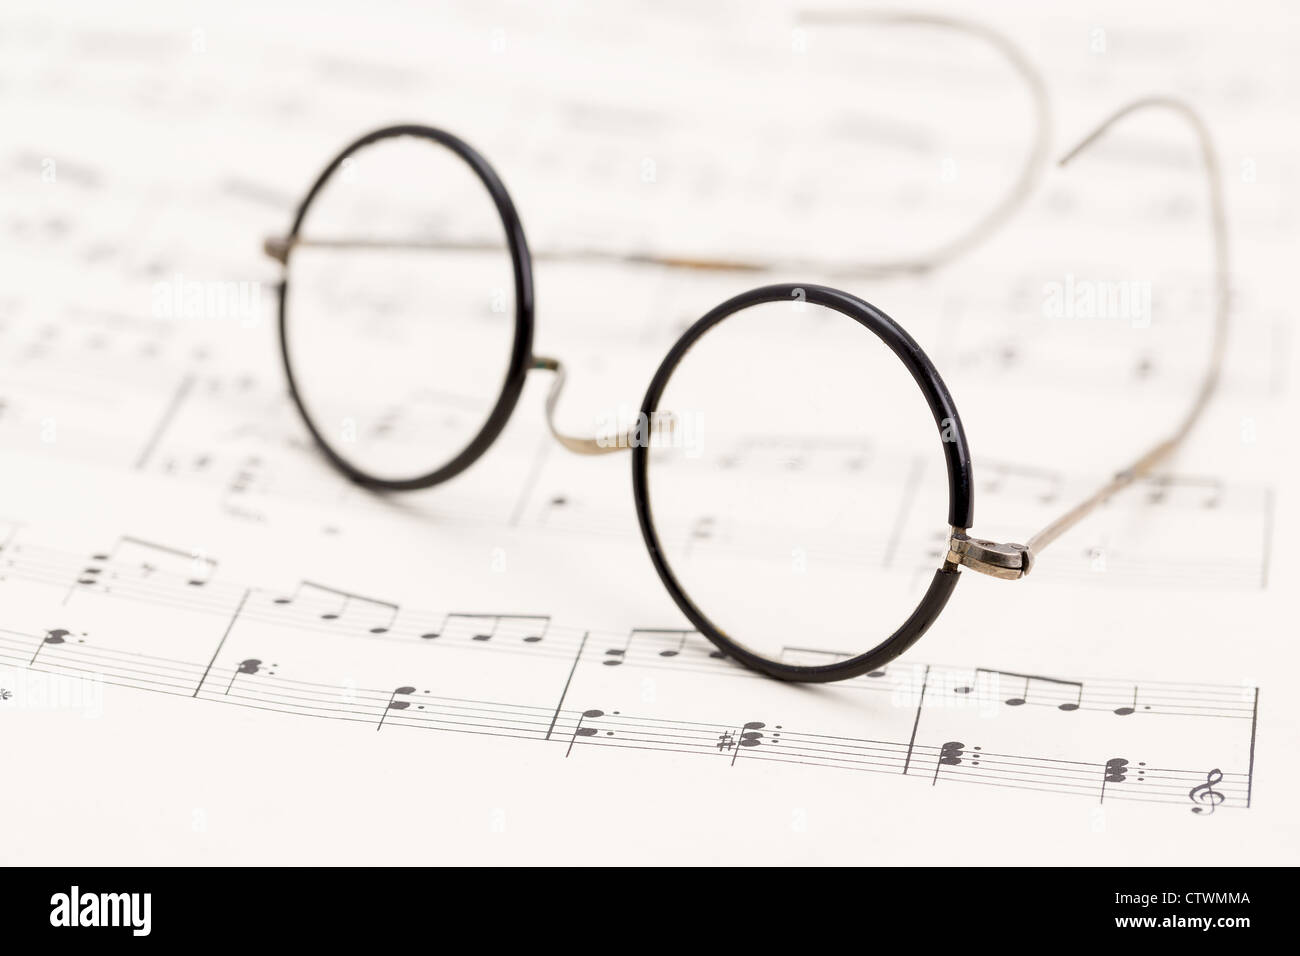 A pair of vintage wire horn rimmed glasses placed onto some sheet music - studio shot with a very shallow depth - Stock Image